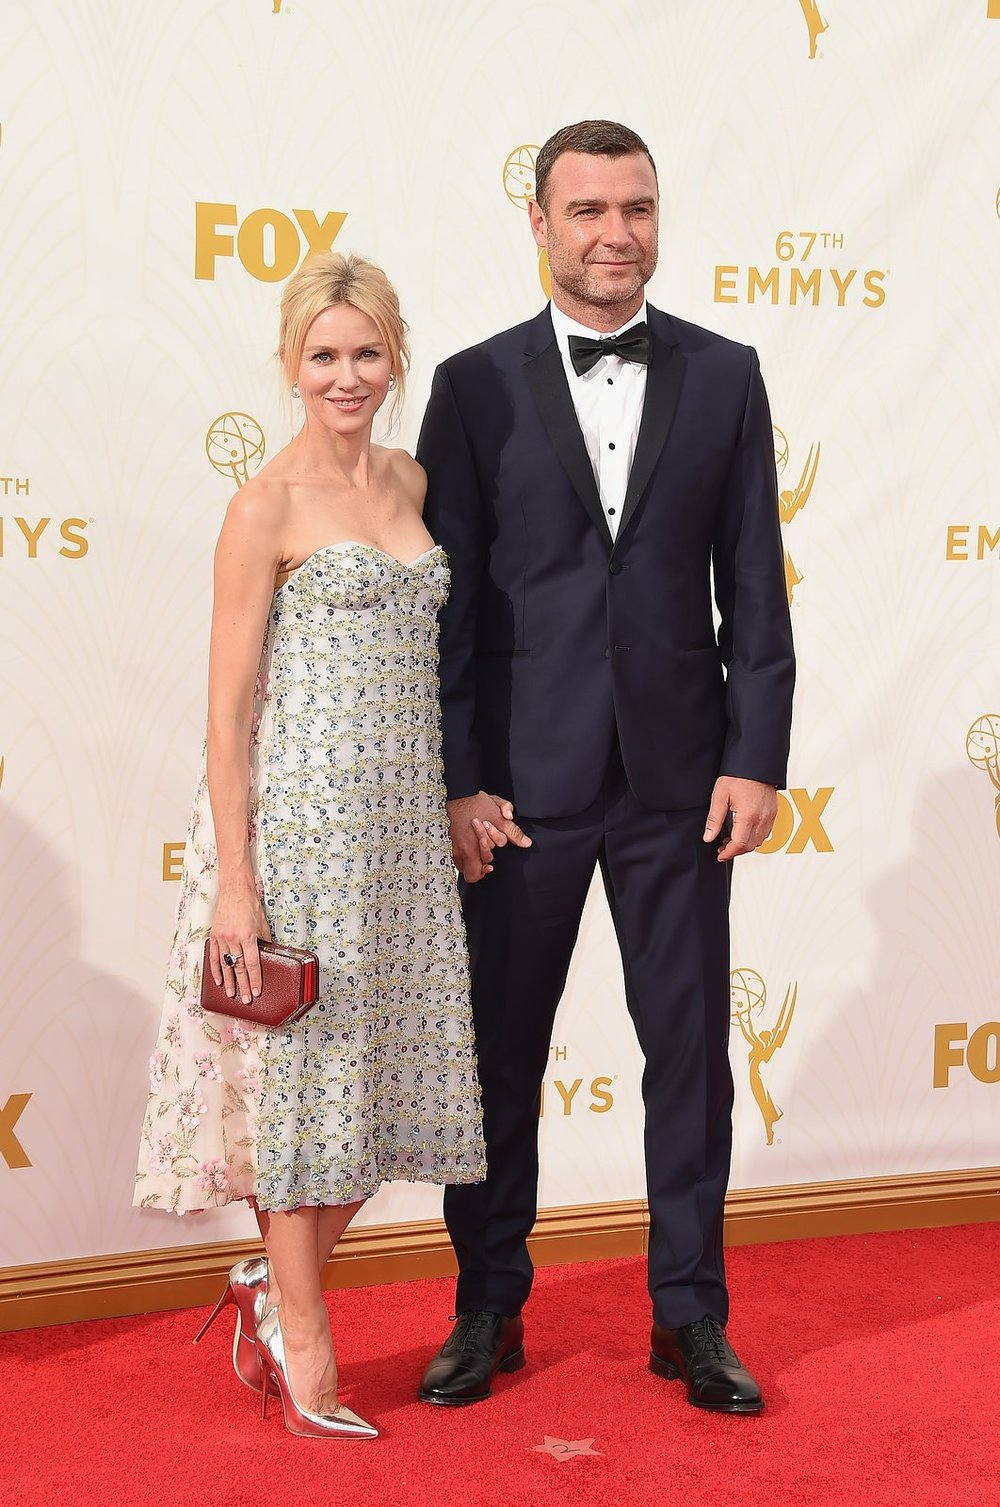 naomi-watts-emmys-red-carpet-2015.jpg